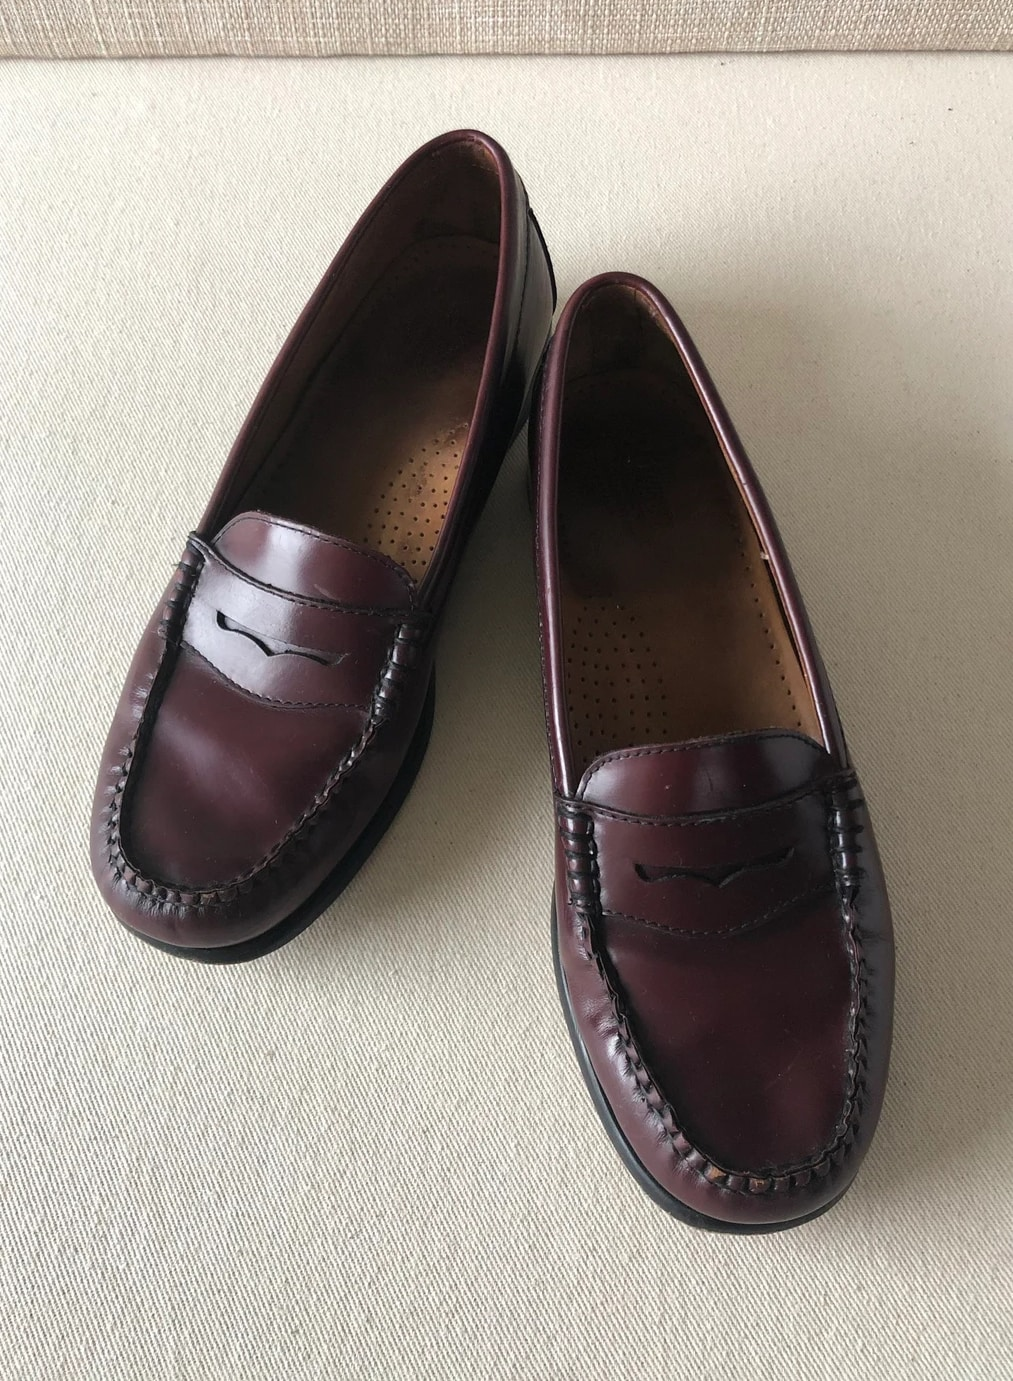 Vintage 80s GH Bass & Co Wayfarer Brown Weejuns Penny Loafers Size 7